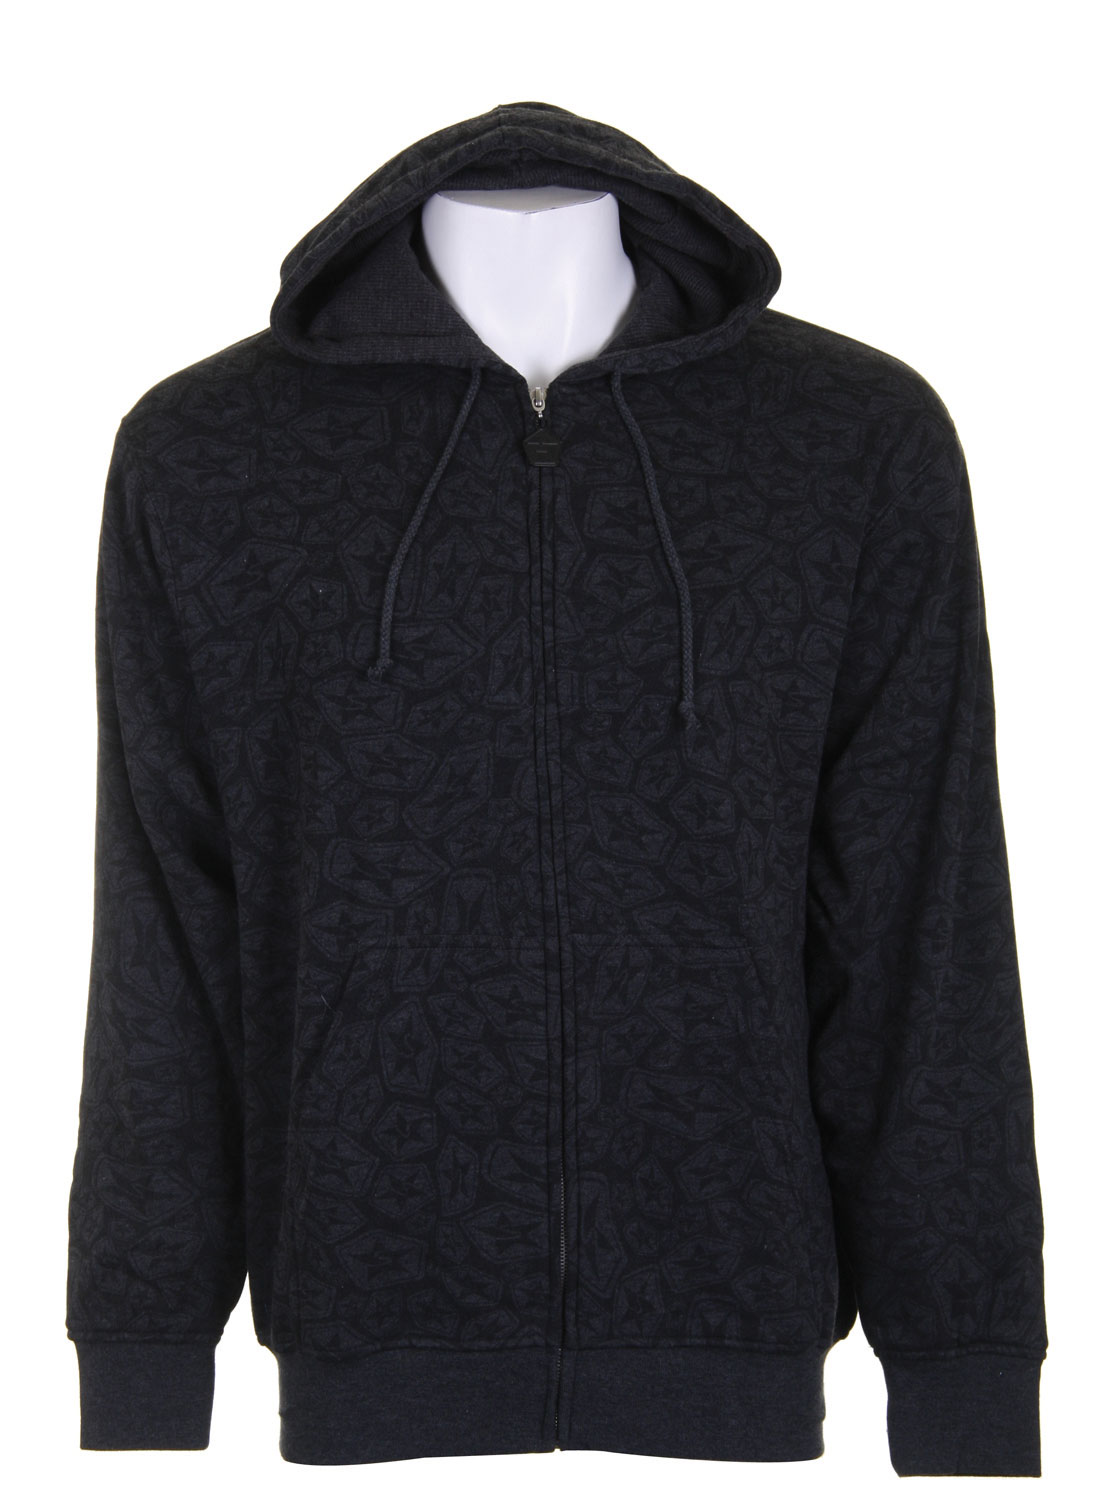 The Sessions Swirl Zip Hoodie Charcoal Heather features a beautifully abstract star and swirl pattern that promises to get you noticed! Made of eighty percent cotton, this lightweight, yet warm sweatshirt will keep you nice and toasty while you are on the move. Its front pockets and drawstring hood make this hoodie comfortable yet functional. Its casual and comfortable style will set you apart from the crowd at a very affordable price. The Sessions Swirl Zip Hoodie is a stylish and affordable addition to any wardrobe.Key Features of The Sessions Swirl Zip Hoodie: All Over Star Swirl Print80% Cotton / 20% Poly - $19.72